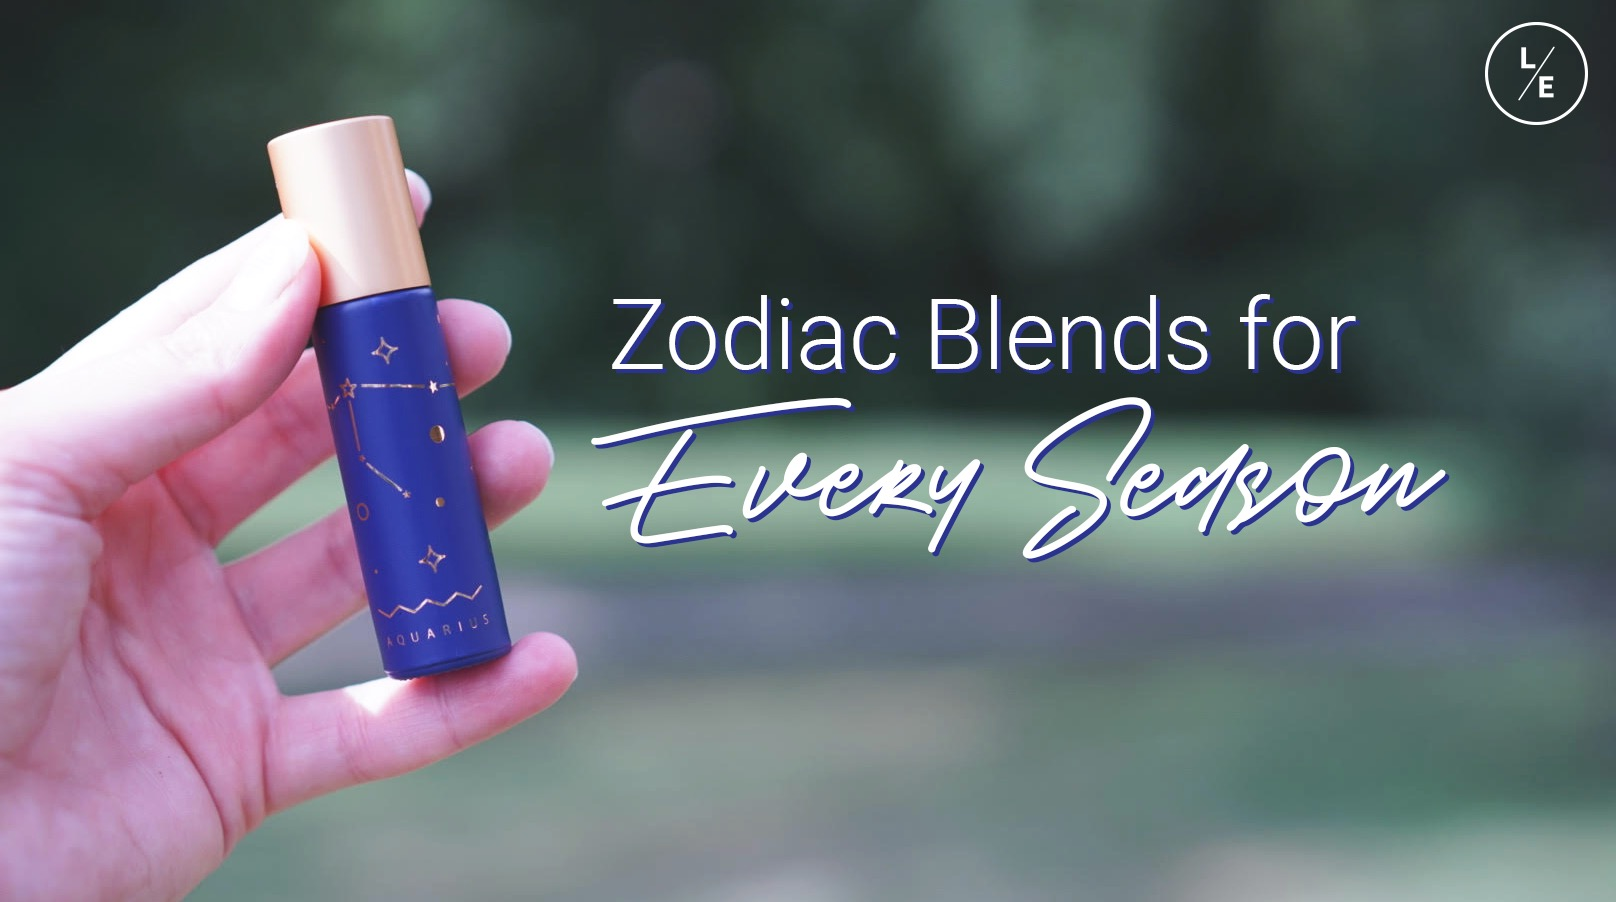 Zodiac Blends for Every Season